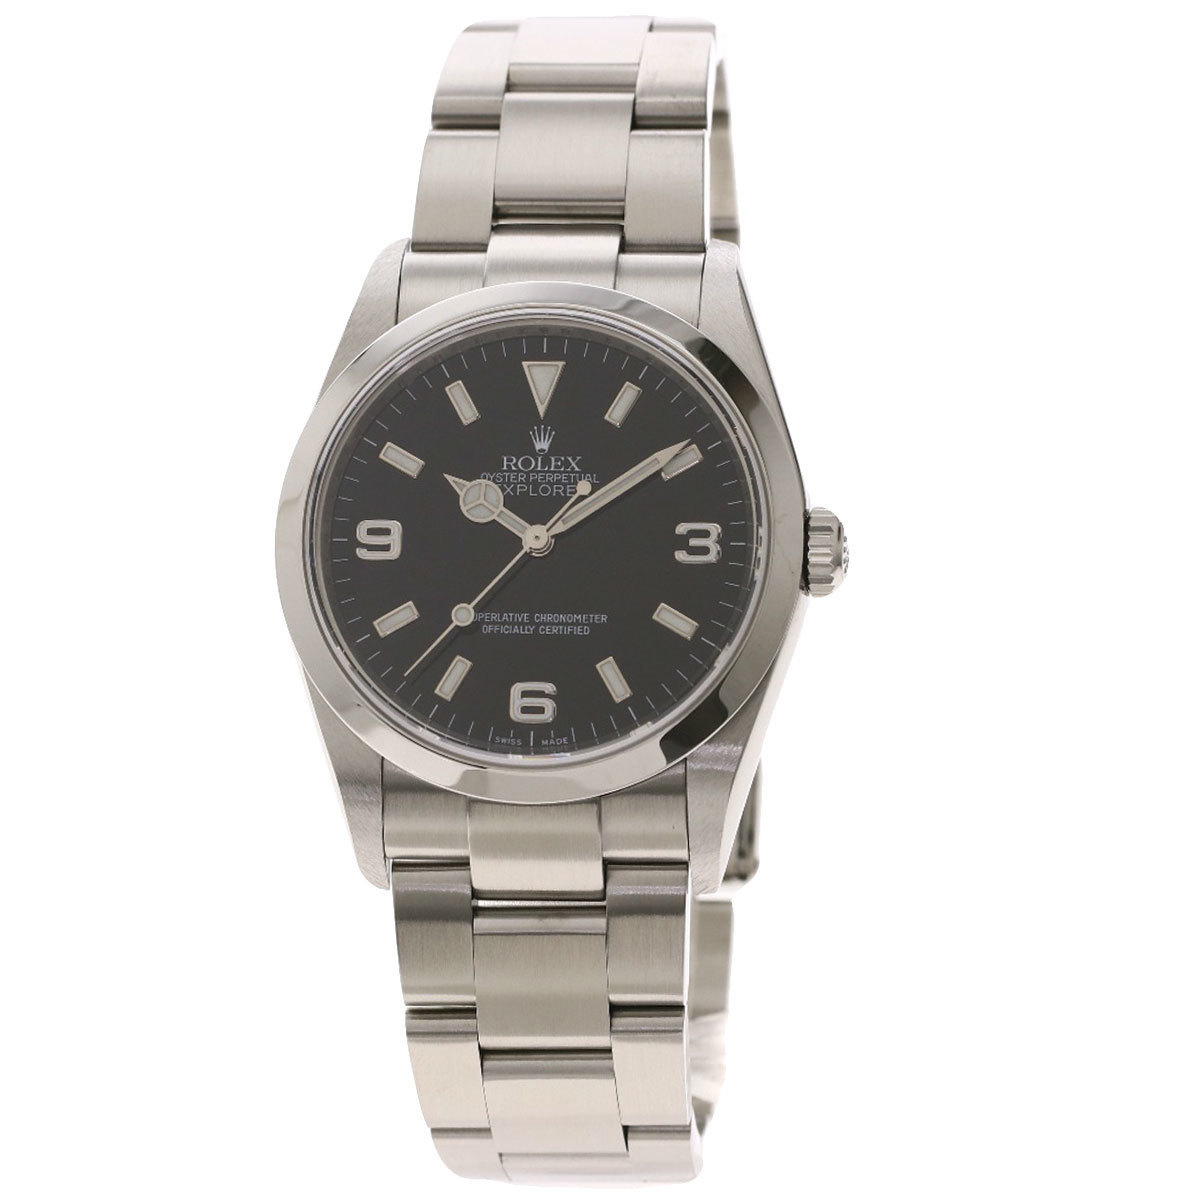 Rolex 114270 Explorer 1 Roulette Watch Stainless Steel Mens